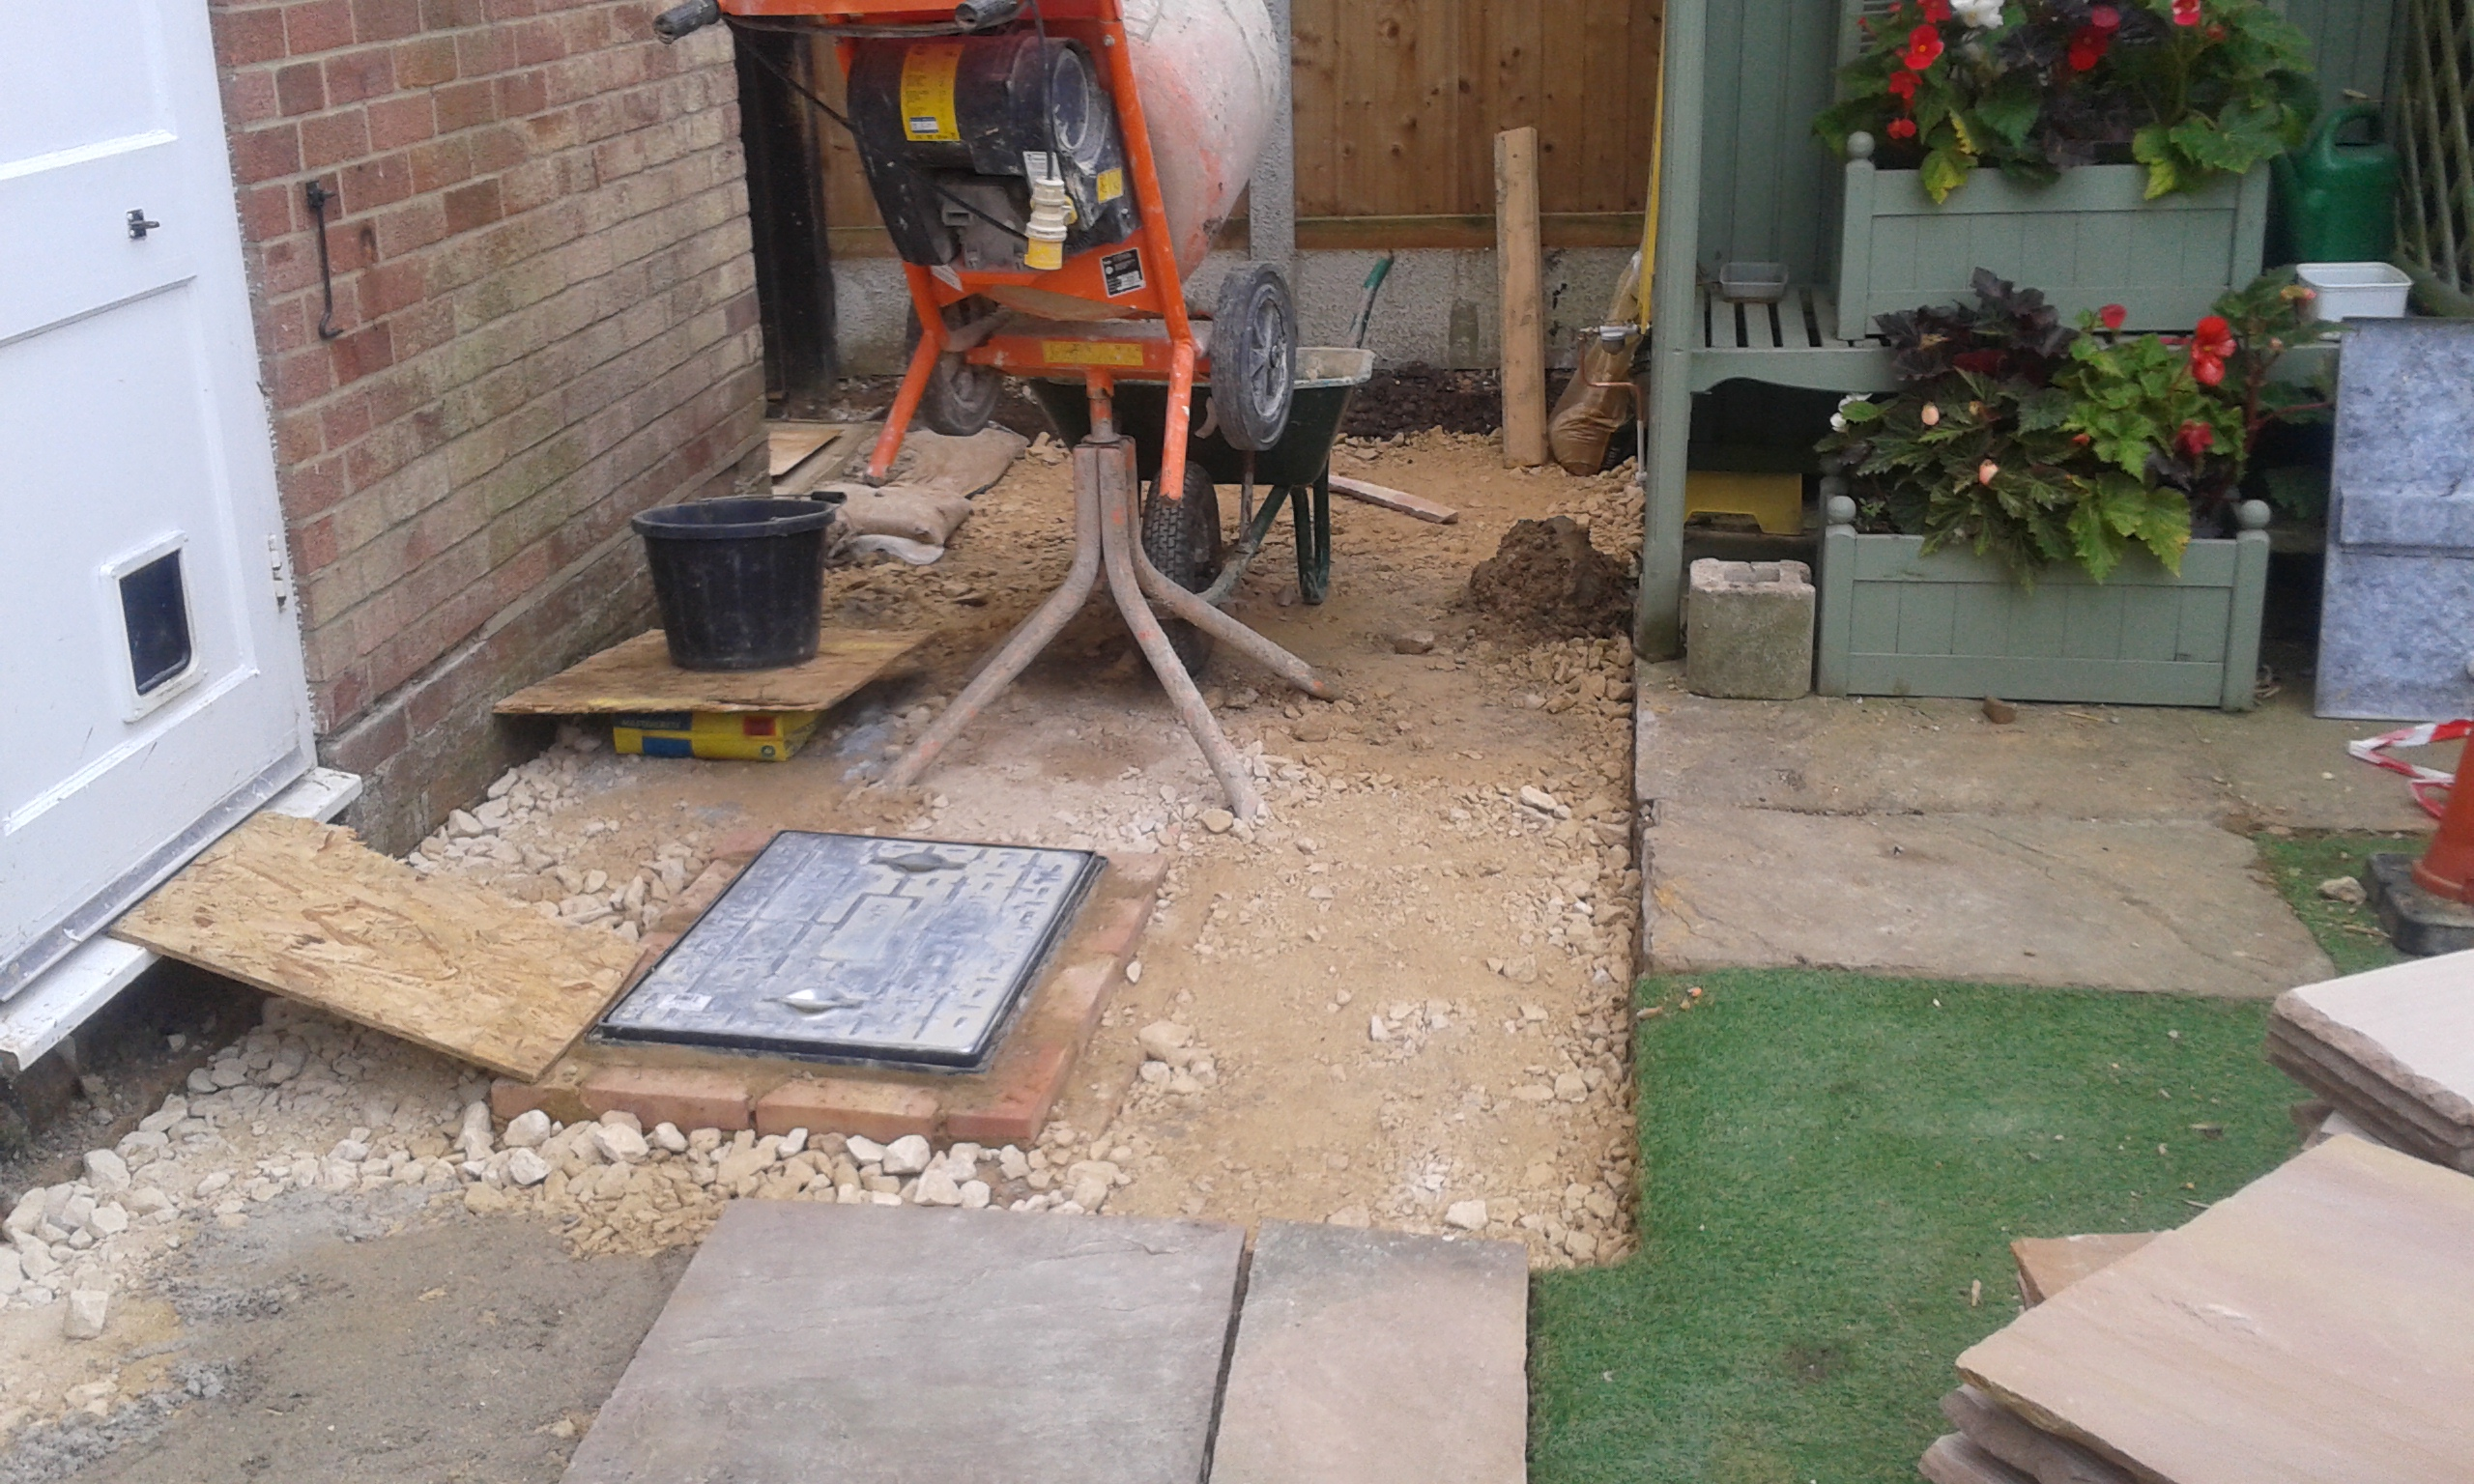 pilling carried out subsidence insurance claim